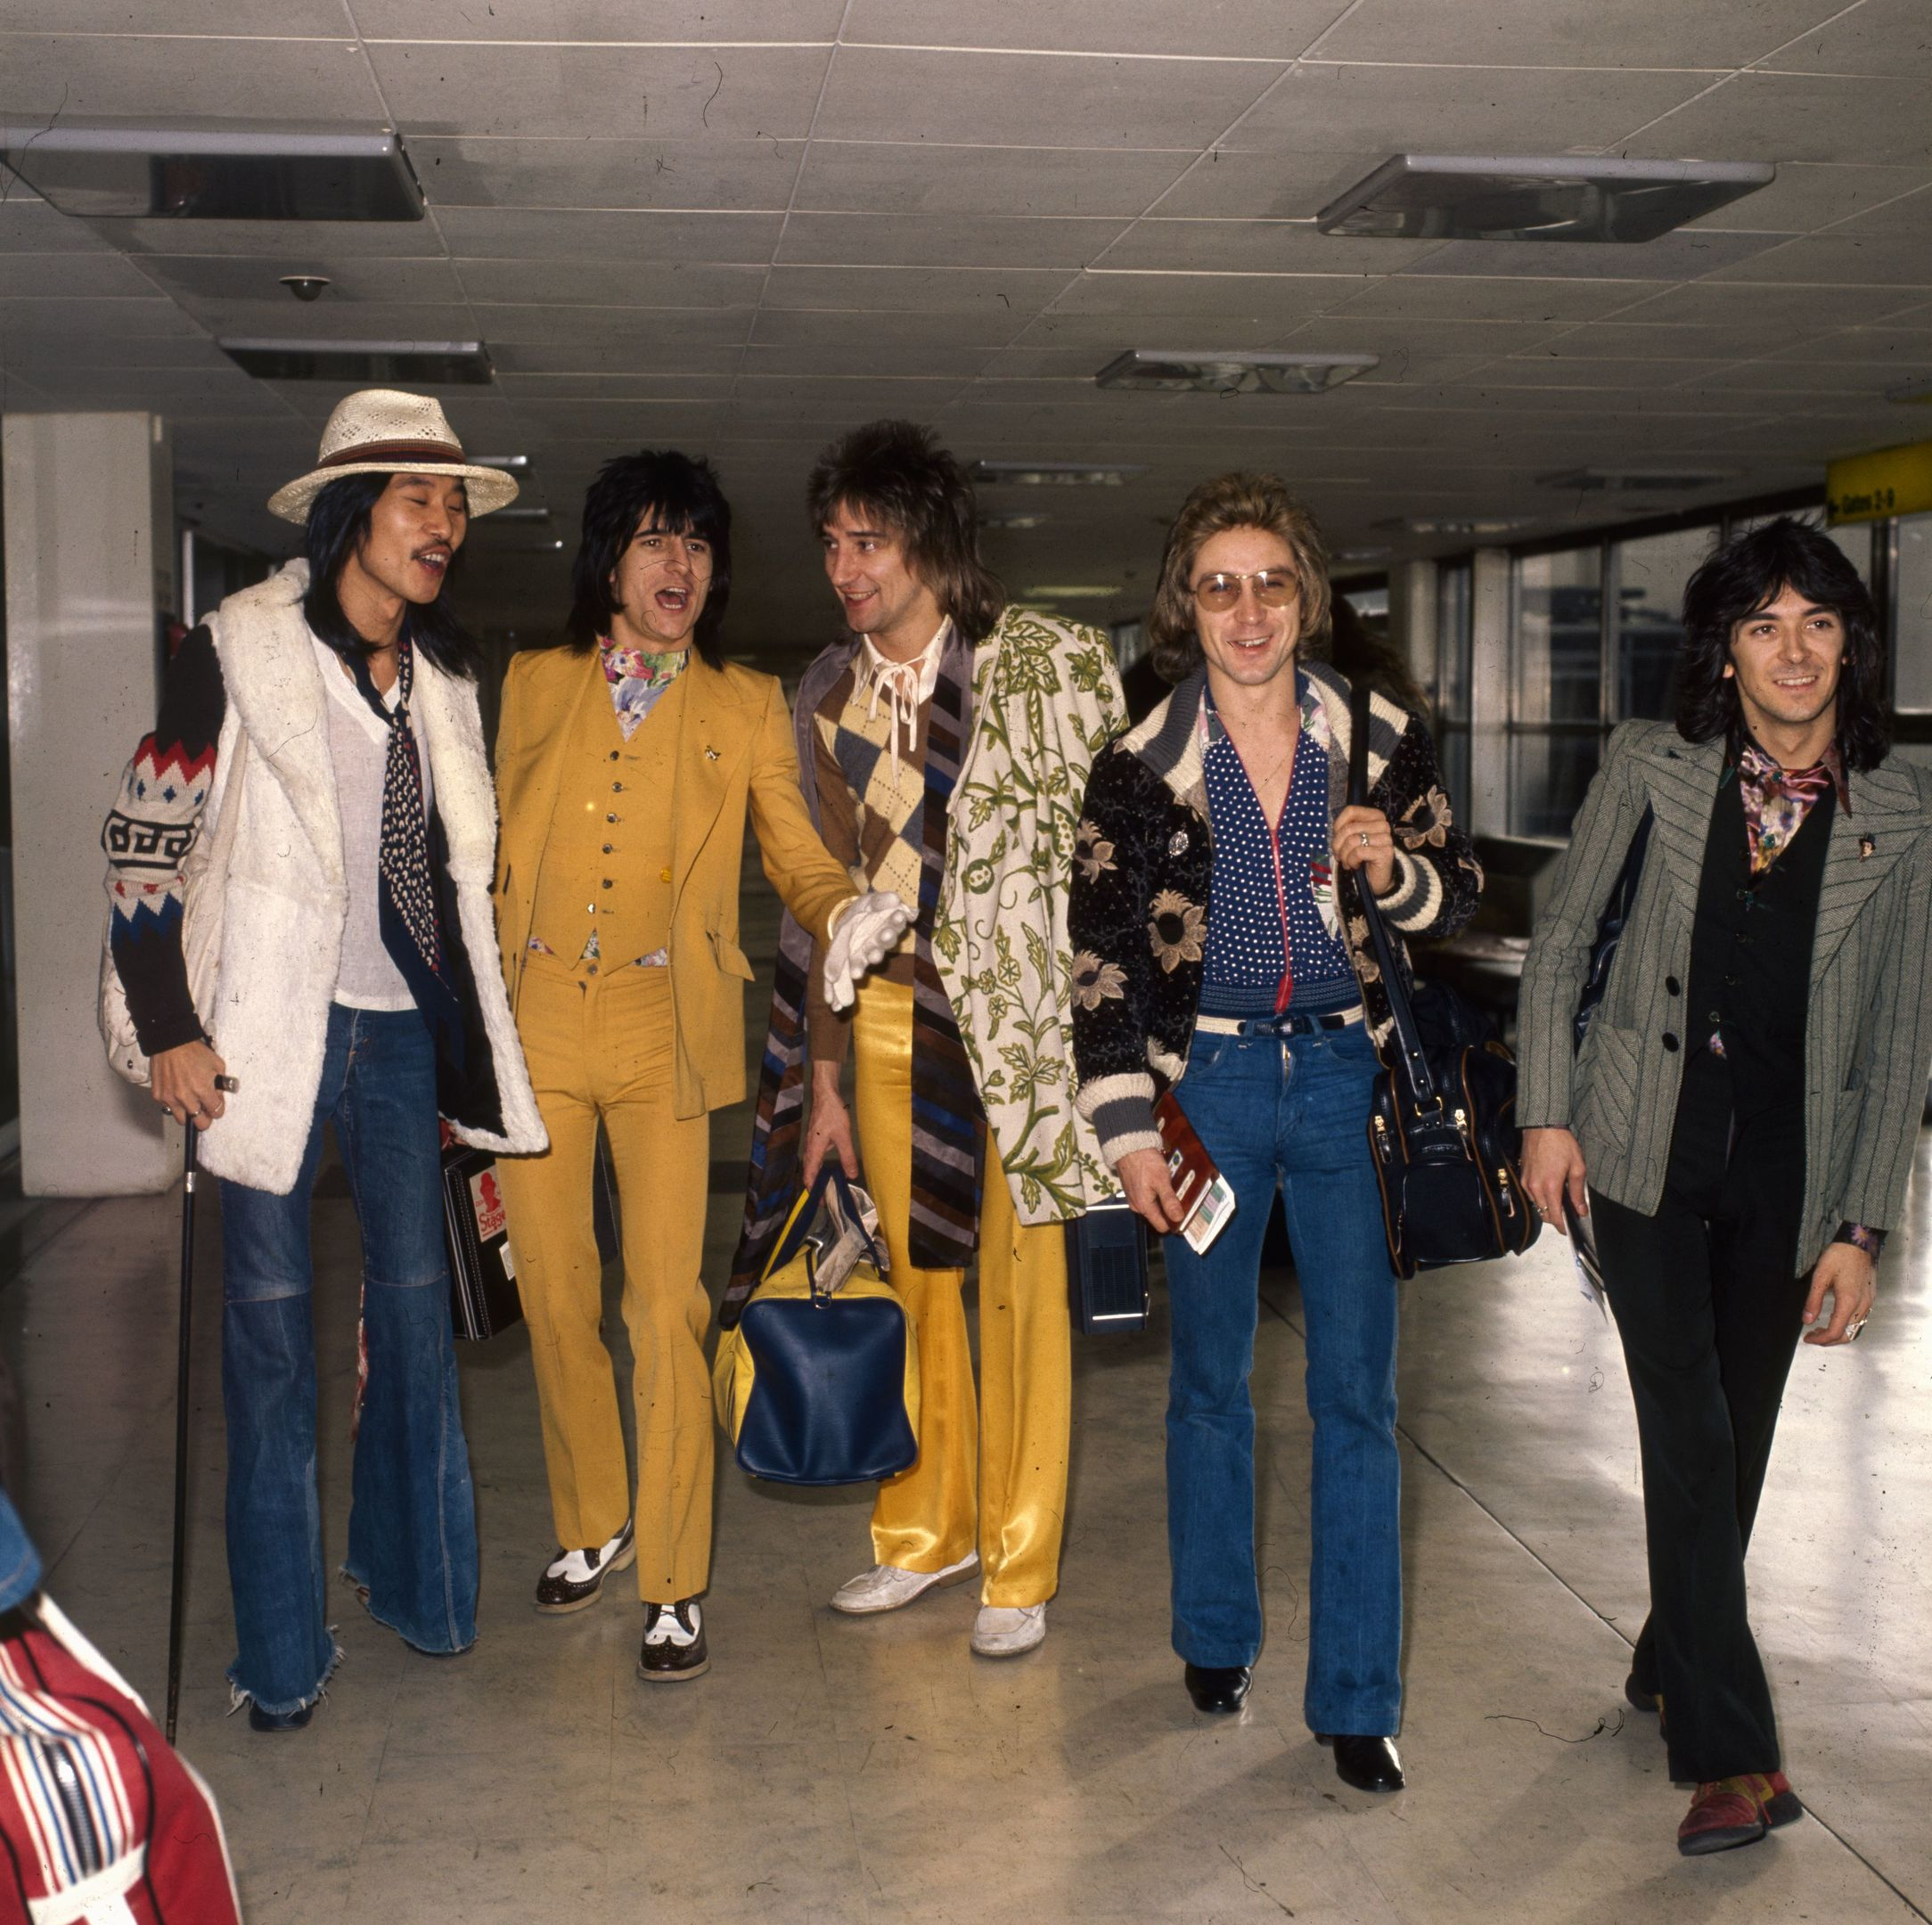 Rod Stewart with the Faces at London Airport. From left to right are: Tetsu Yamauchi, Ron Wood, Rod Stewart, Kenny Jones, and Ian McLagan. (Dennis Stone/Express/Getty Images)